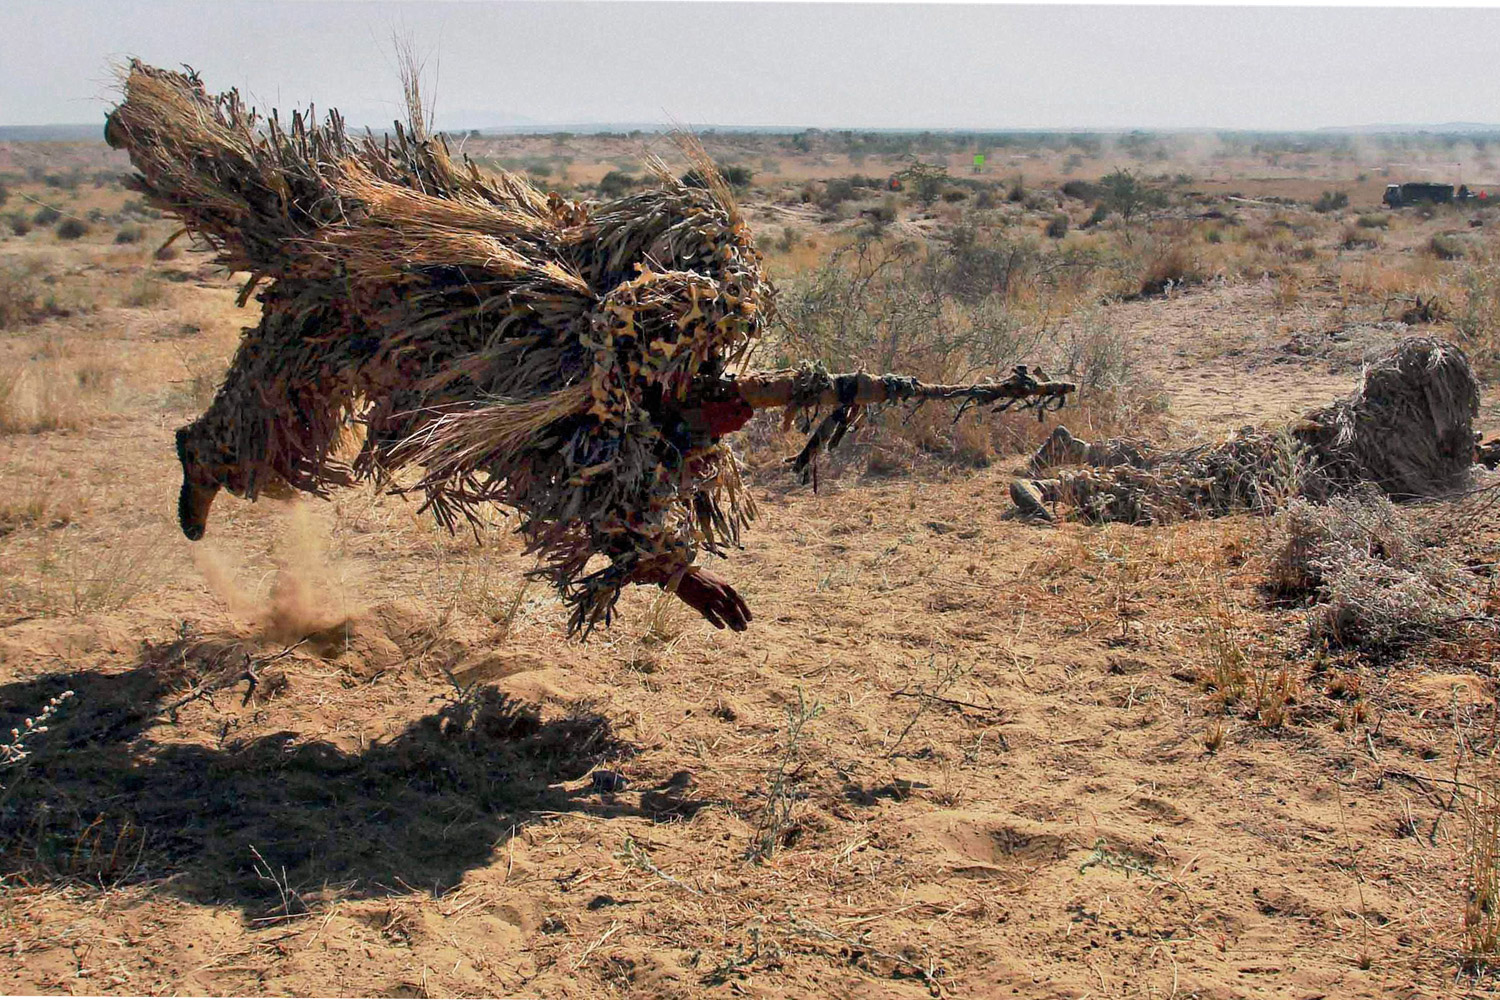 December 5, 2011. Indian army soldiers in camouflage take part in exercise  Sudarshan Shakti  at Bugundi in Rajasthan state's Barmer desert near the India Pakistan border, India.